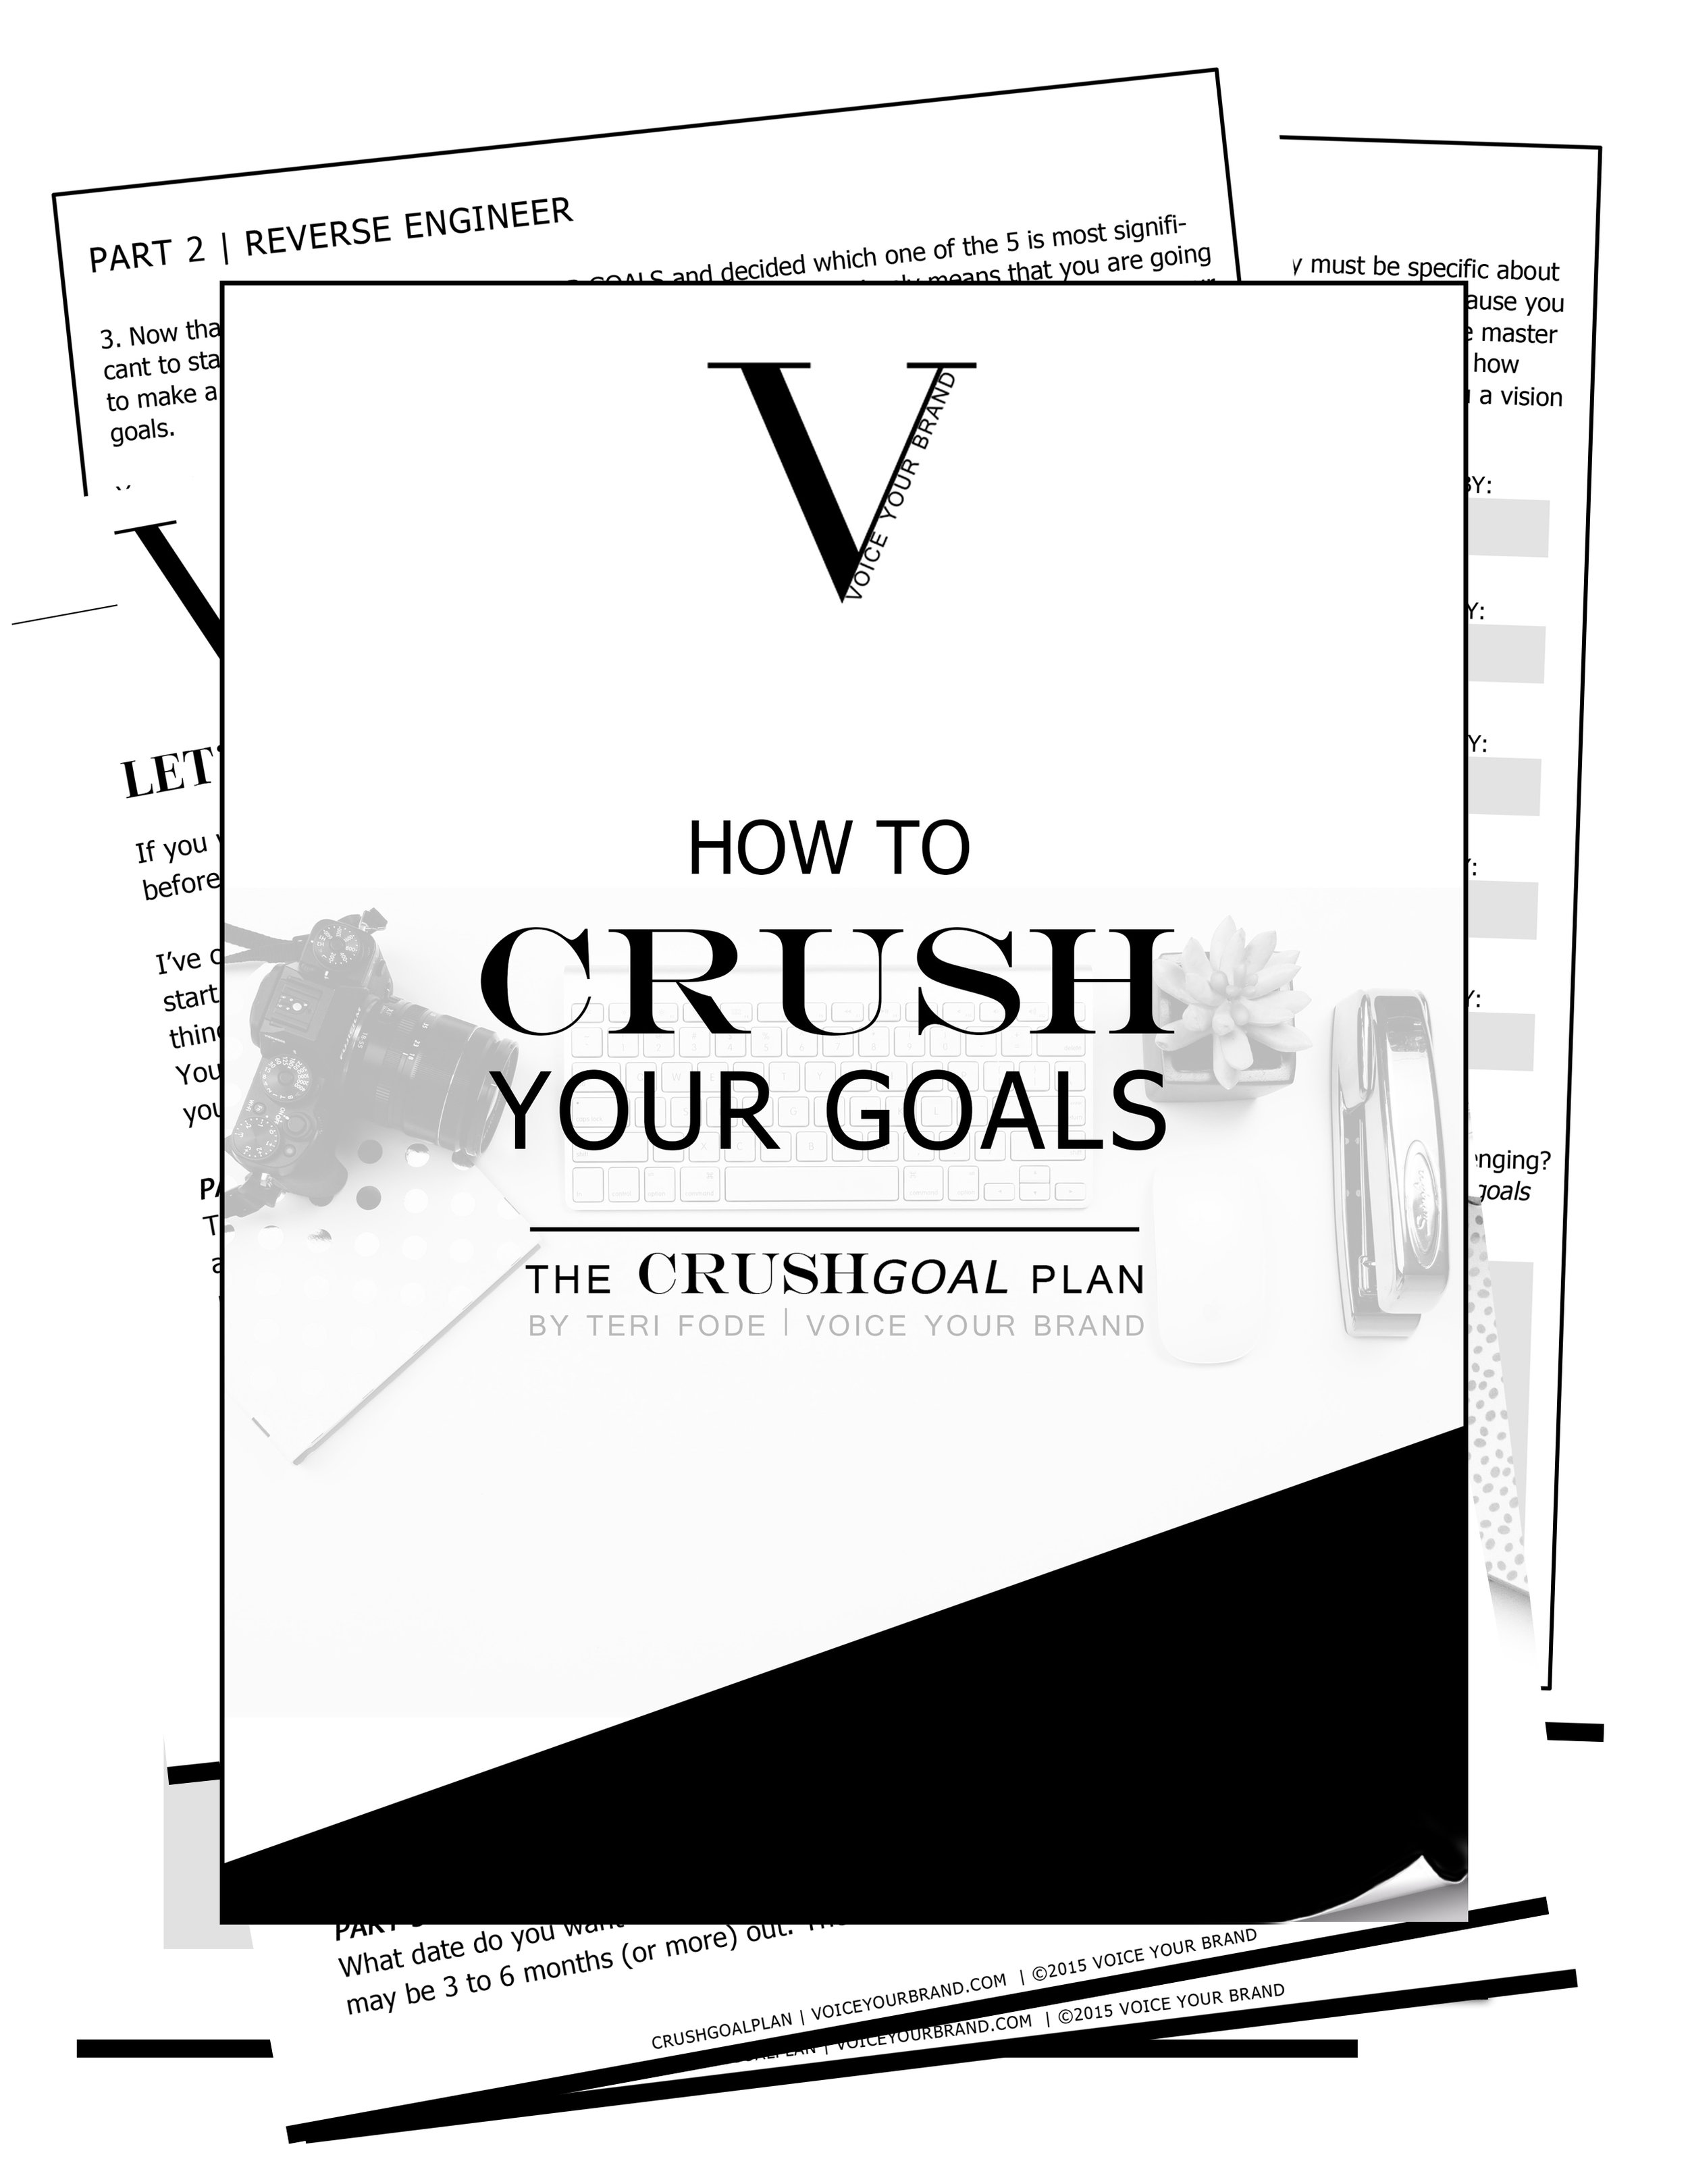 If you want to CRUSH your goals like never before this 5-Step plan will guide you in implementing daily tasks to realize those business goals that keep eluding you. Apply this system to your life and you'll be achieving your goals for real this time.